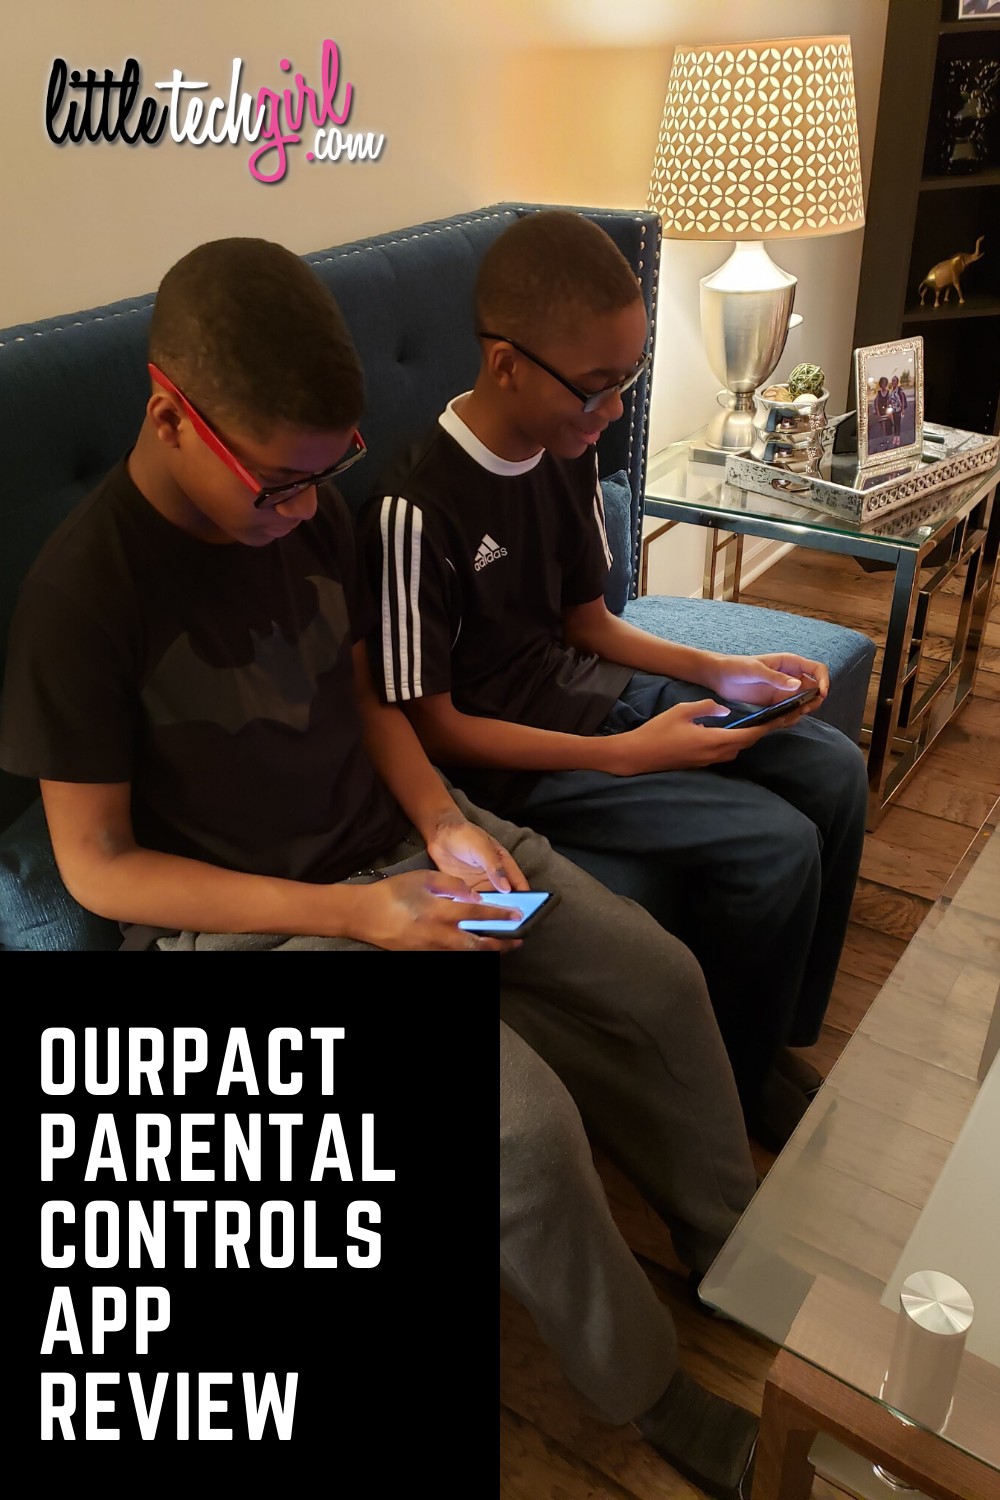 OurPact Parental Controls App Review